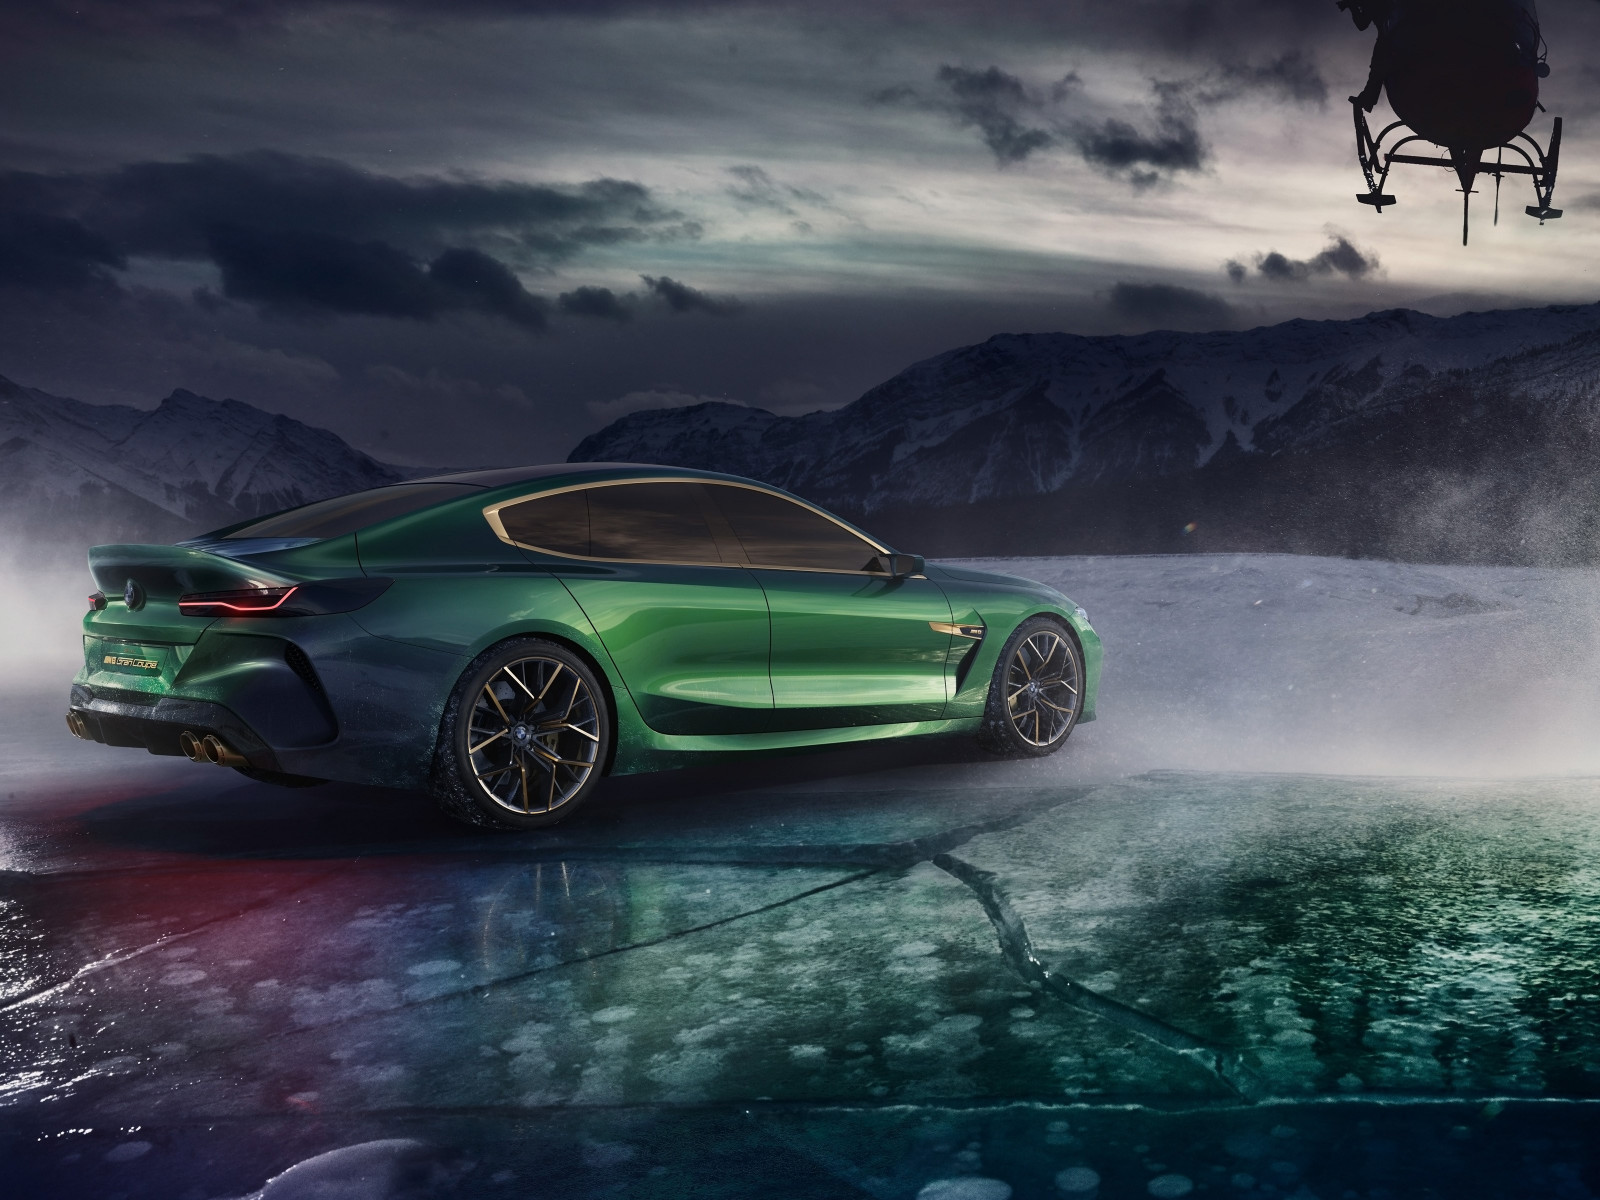 BMW Concept M8 Gran Coupe 2018 rear side wallpaper 1600x1200